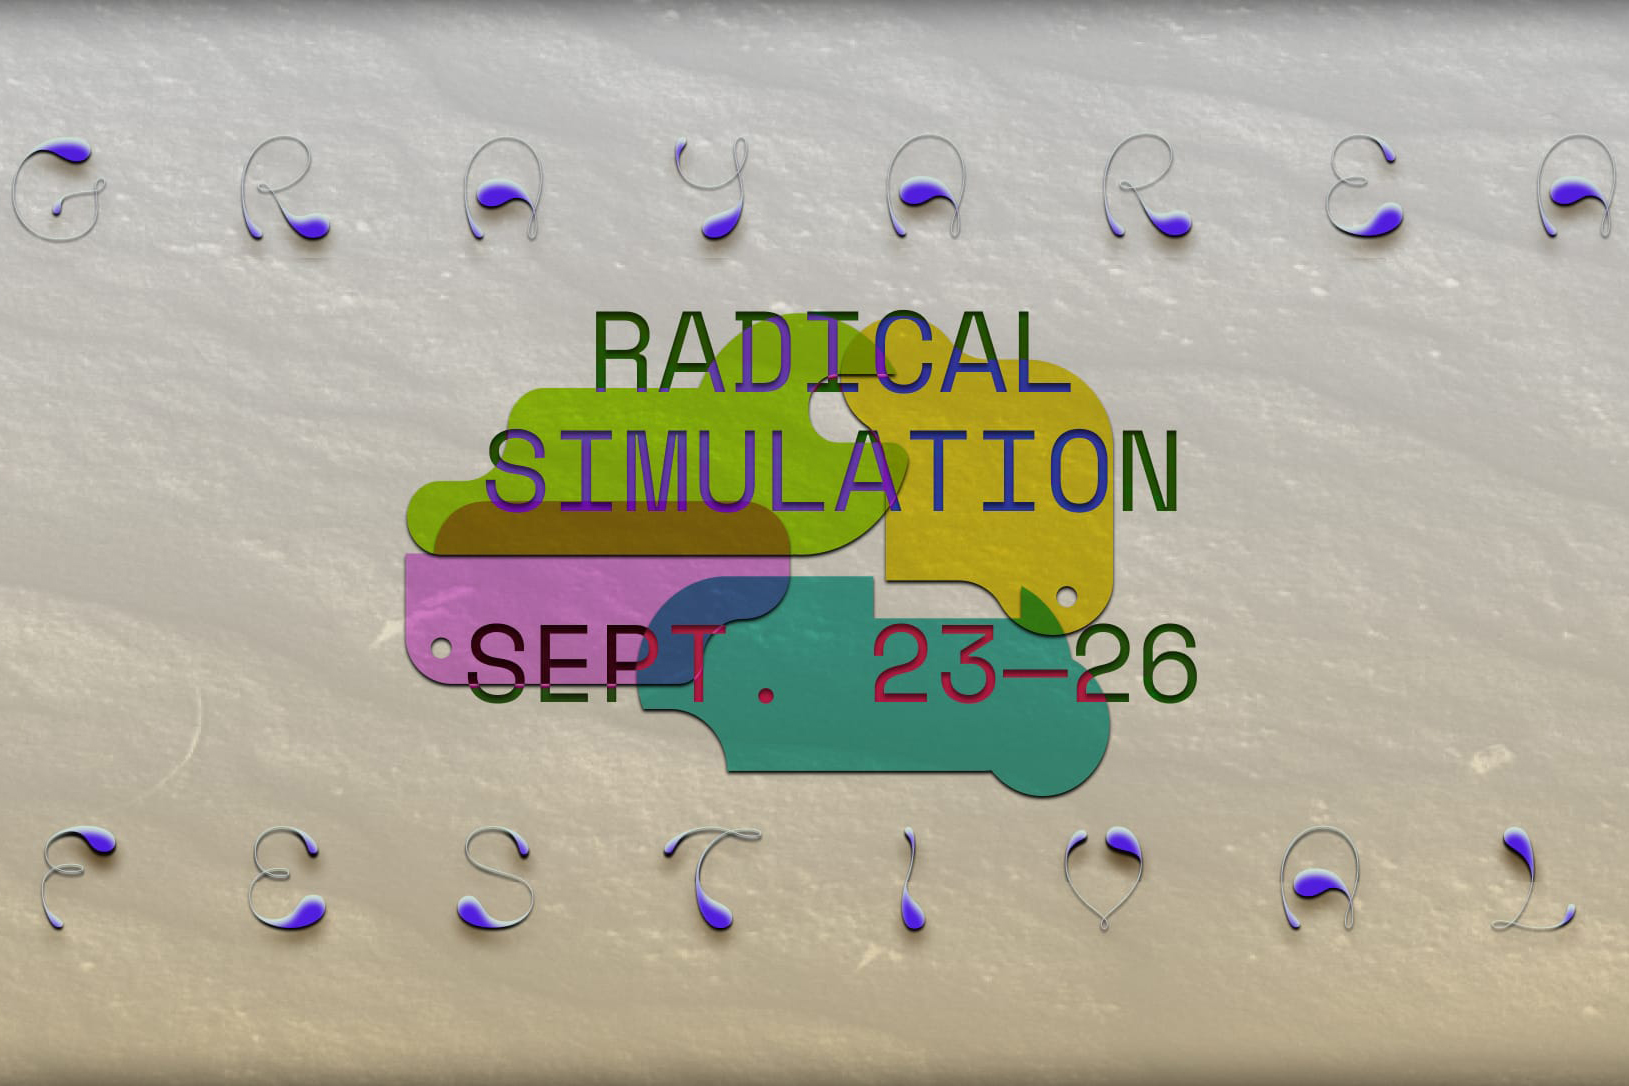 The event flyer for Radical Simulation at Gray Room